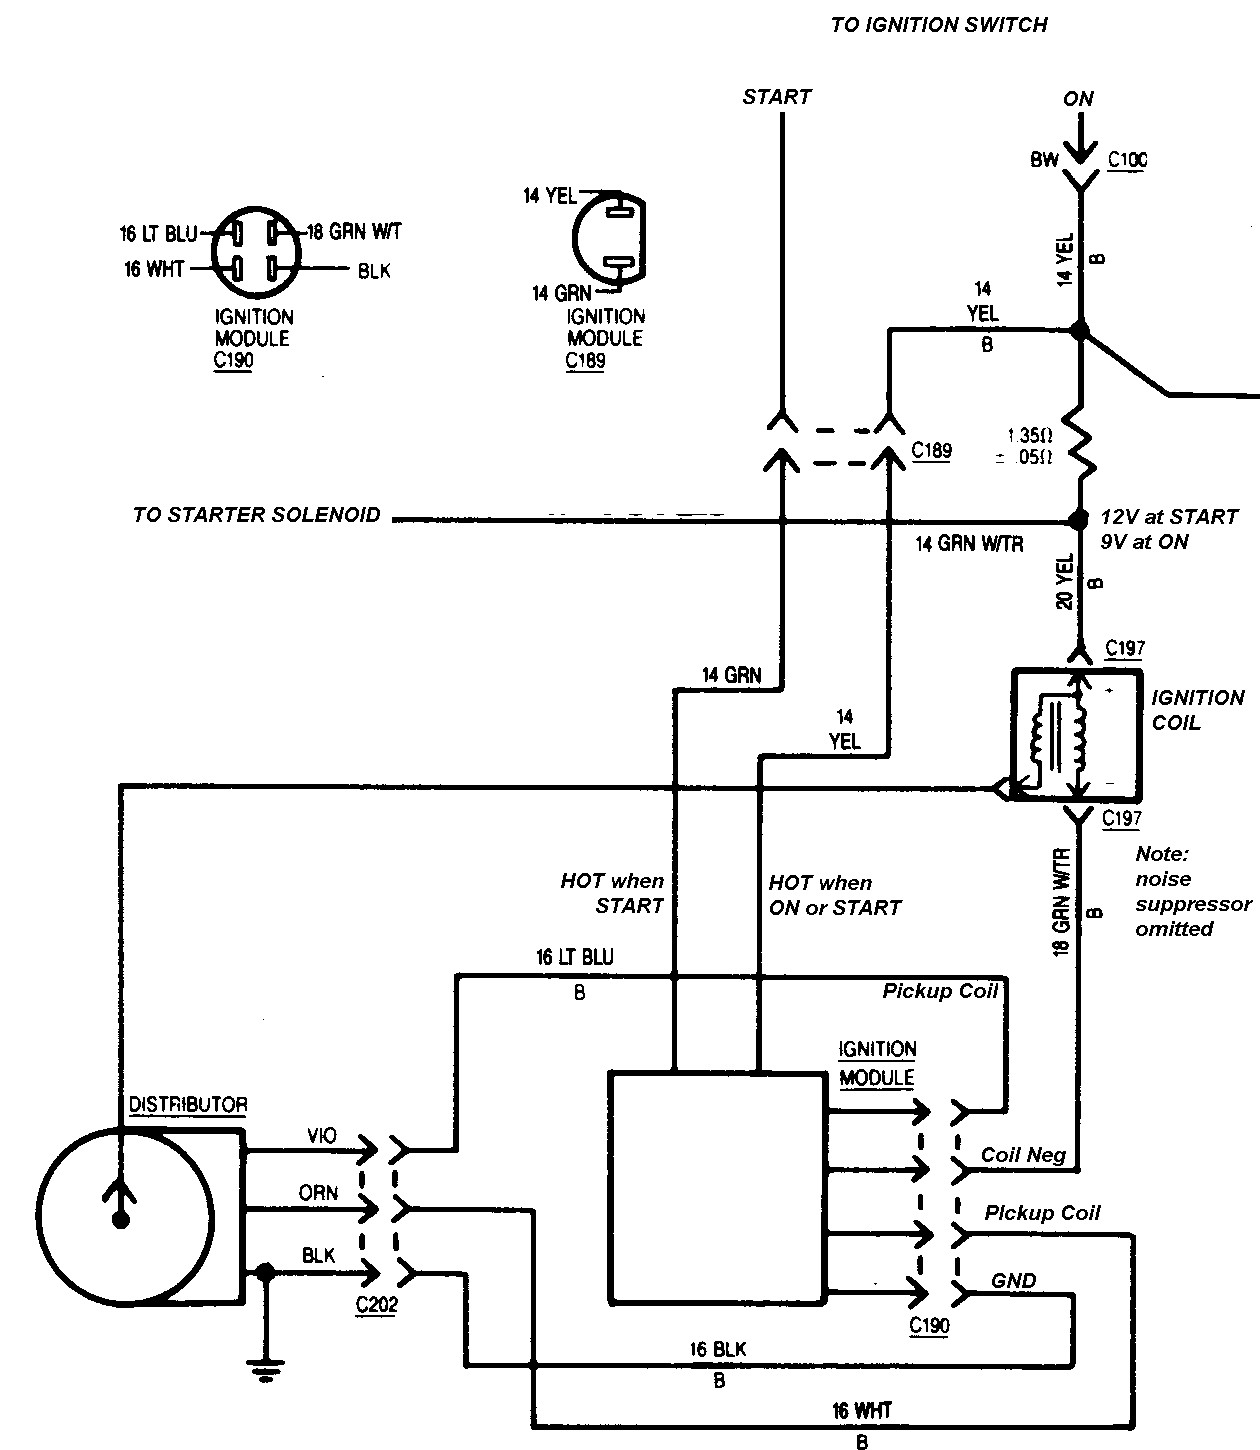 gm ignition module wiring diagram example electrical wiring diagram u2022 rh olkha co gm ignition module [ 1260 x 1450 Pixel ]